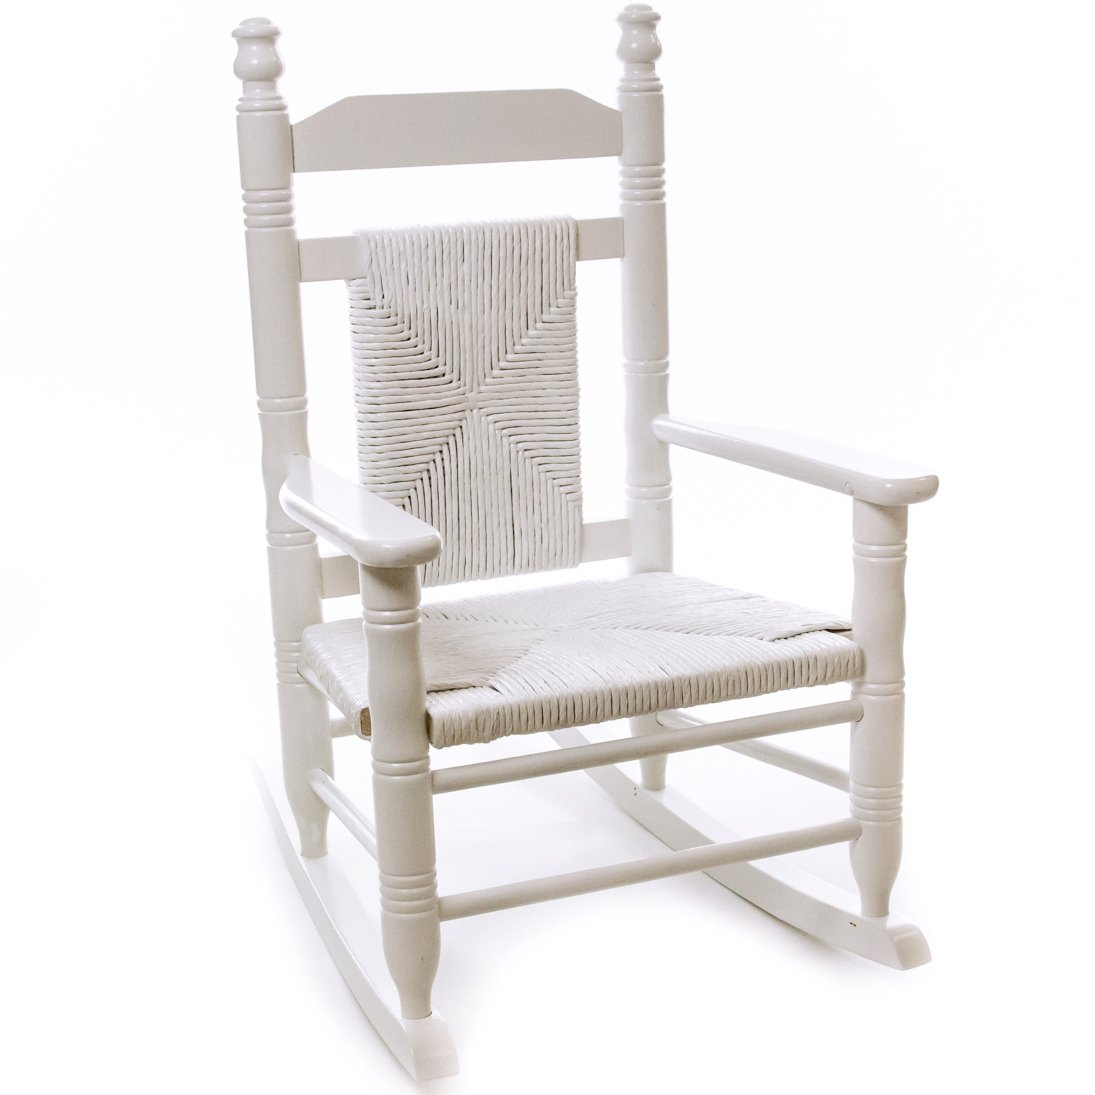 cracker barrel rocking chair reviews large recliner chairs indoor wooden old country store child woven seat pure white